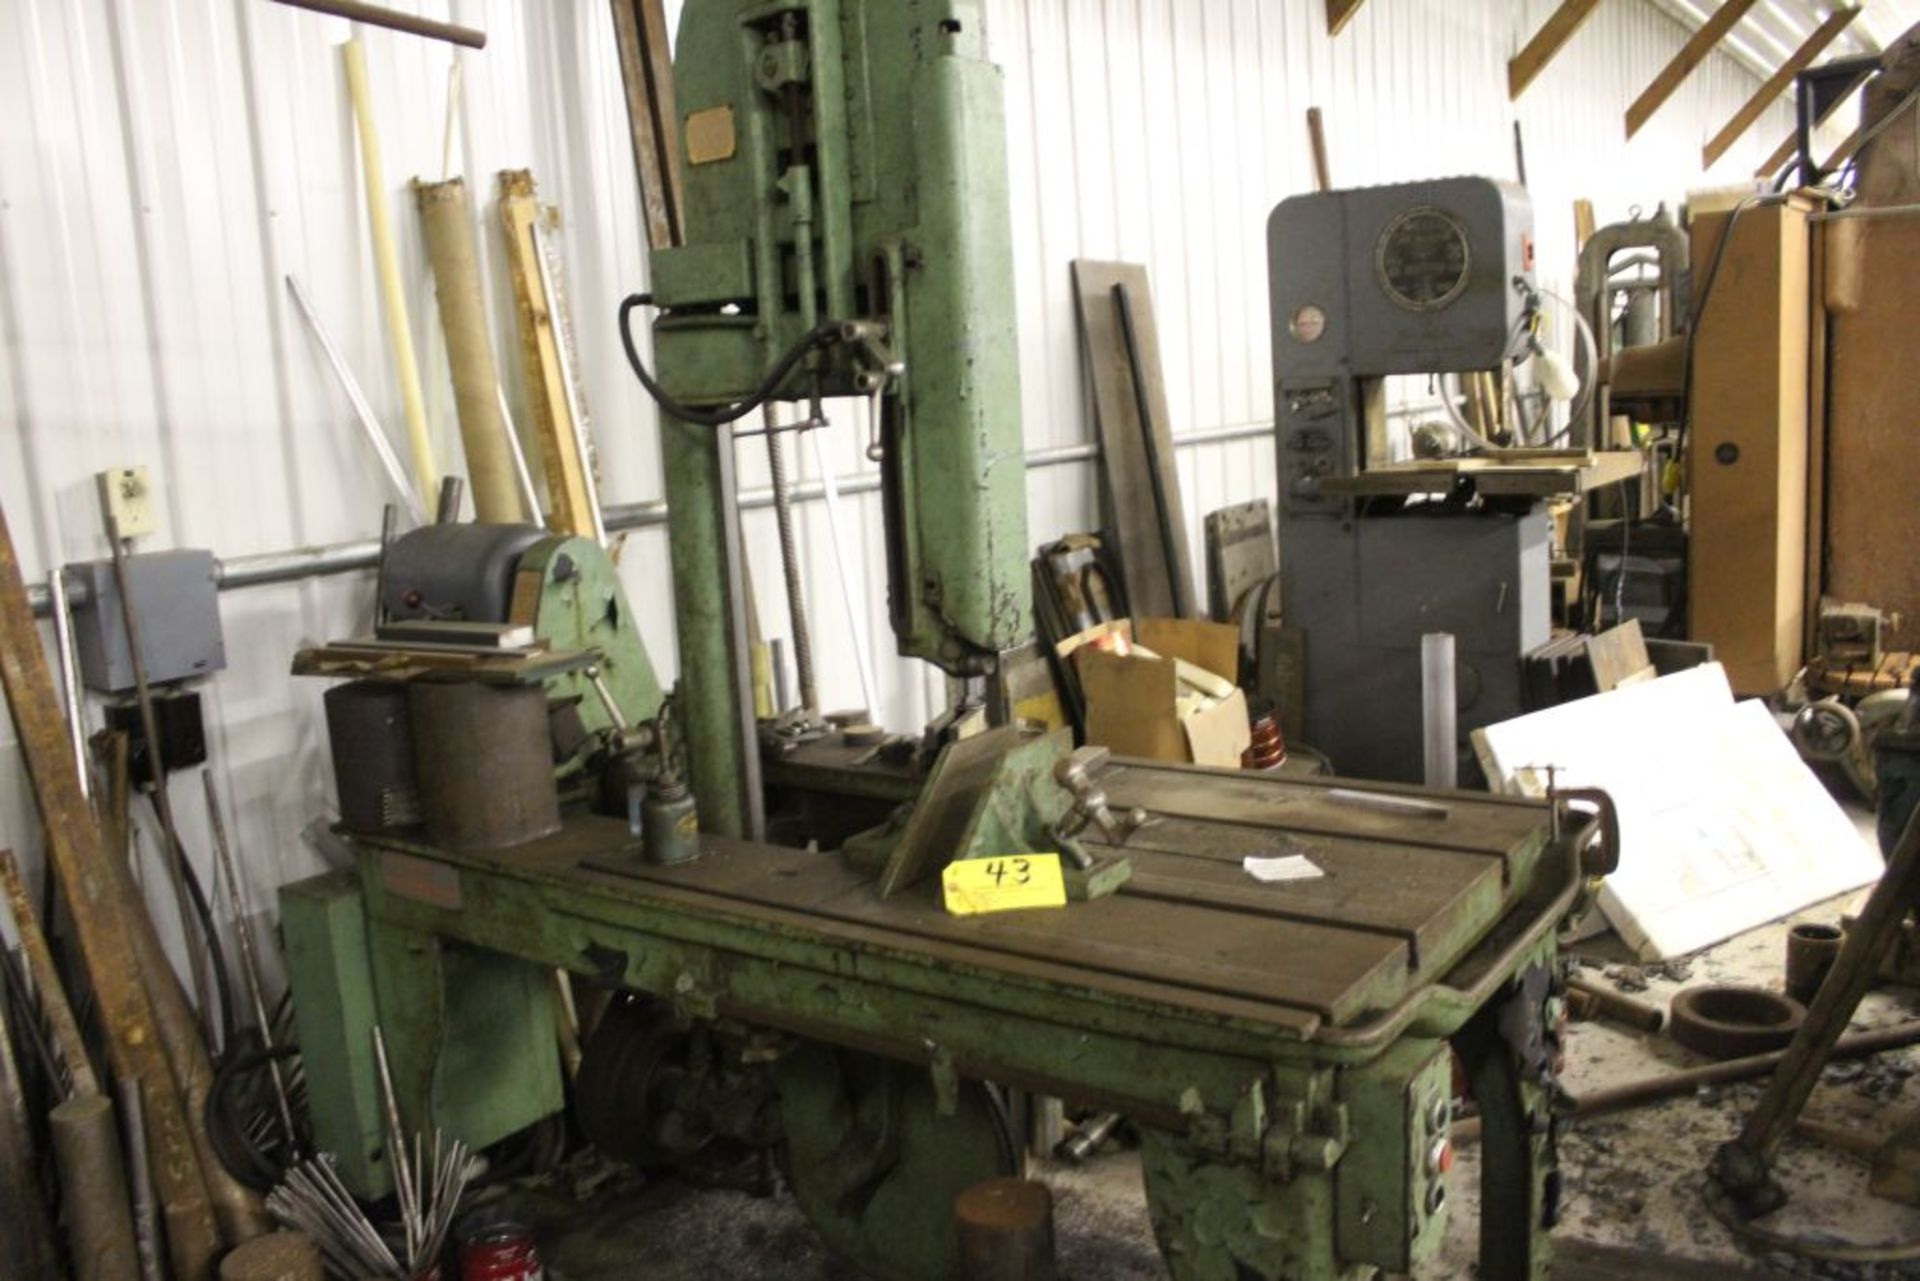 Marvel bandsaw, model 8/M8, sn 88031, 3-speed, vertical / miter cut.